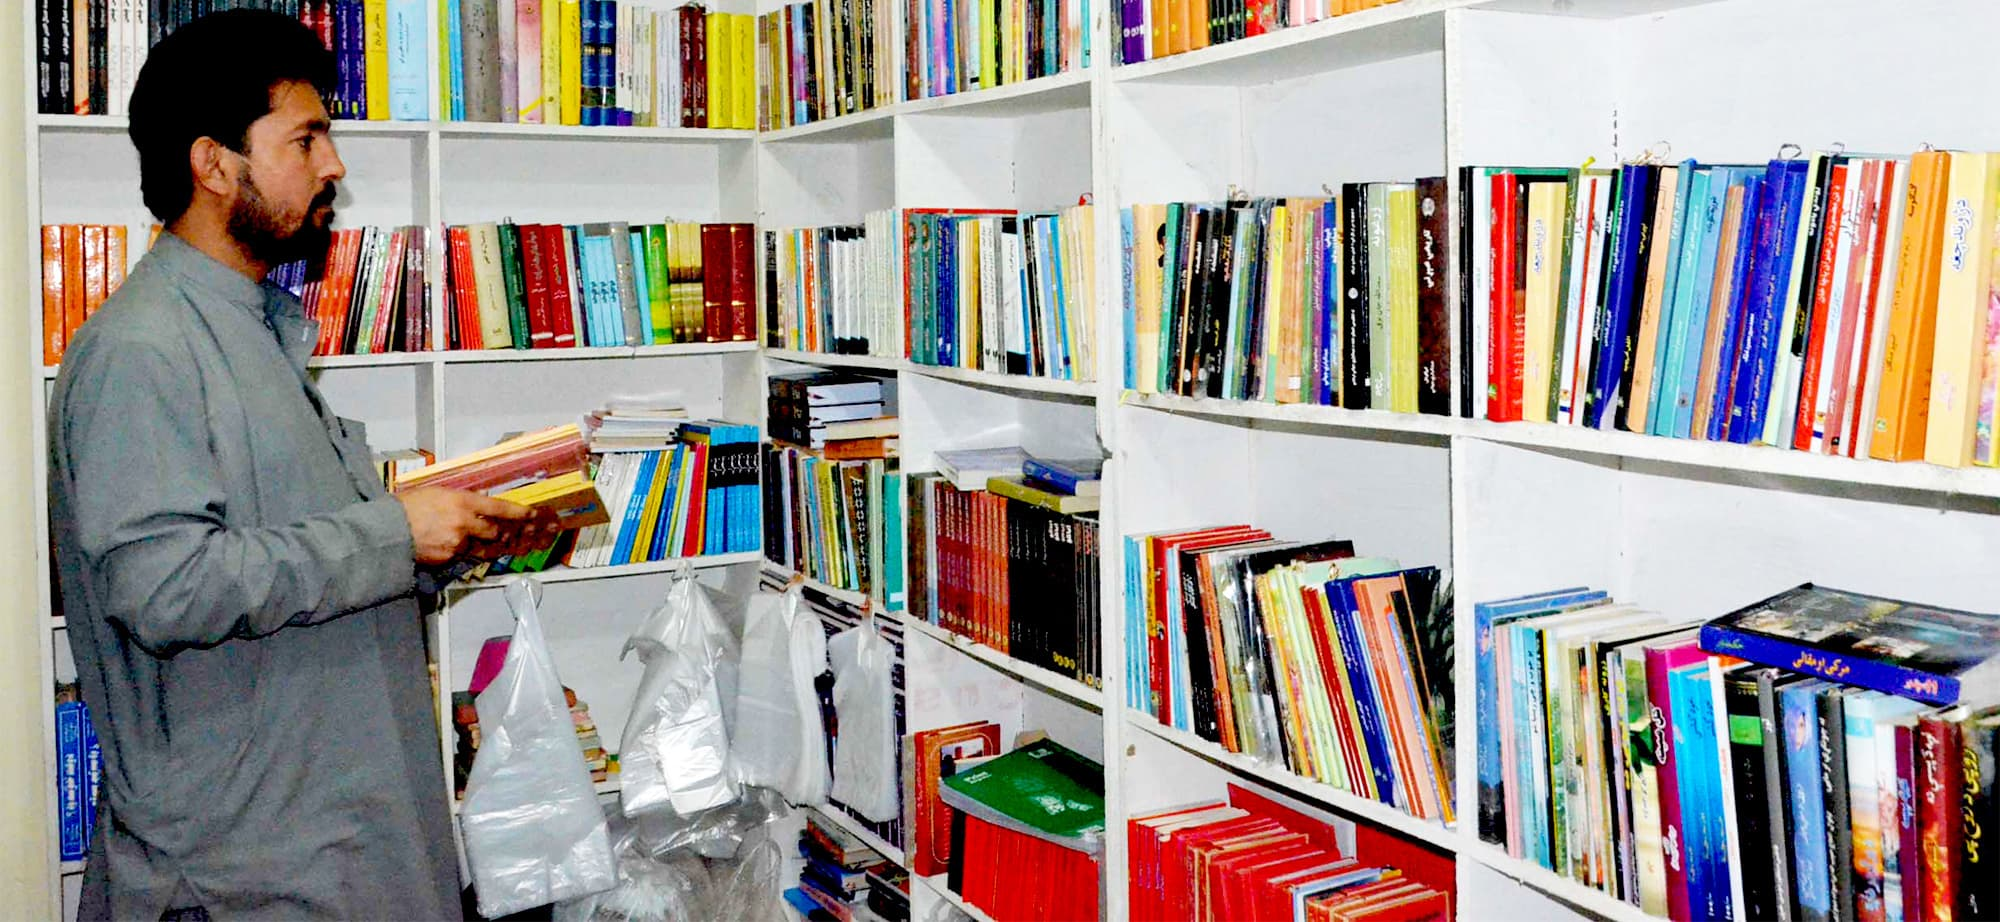 Baz Khan Alamyar overlooking his inventory of books, ranging from current affairs to philosophy